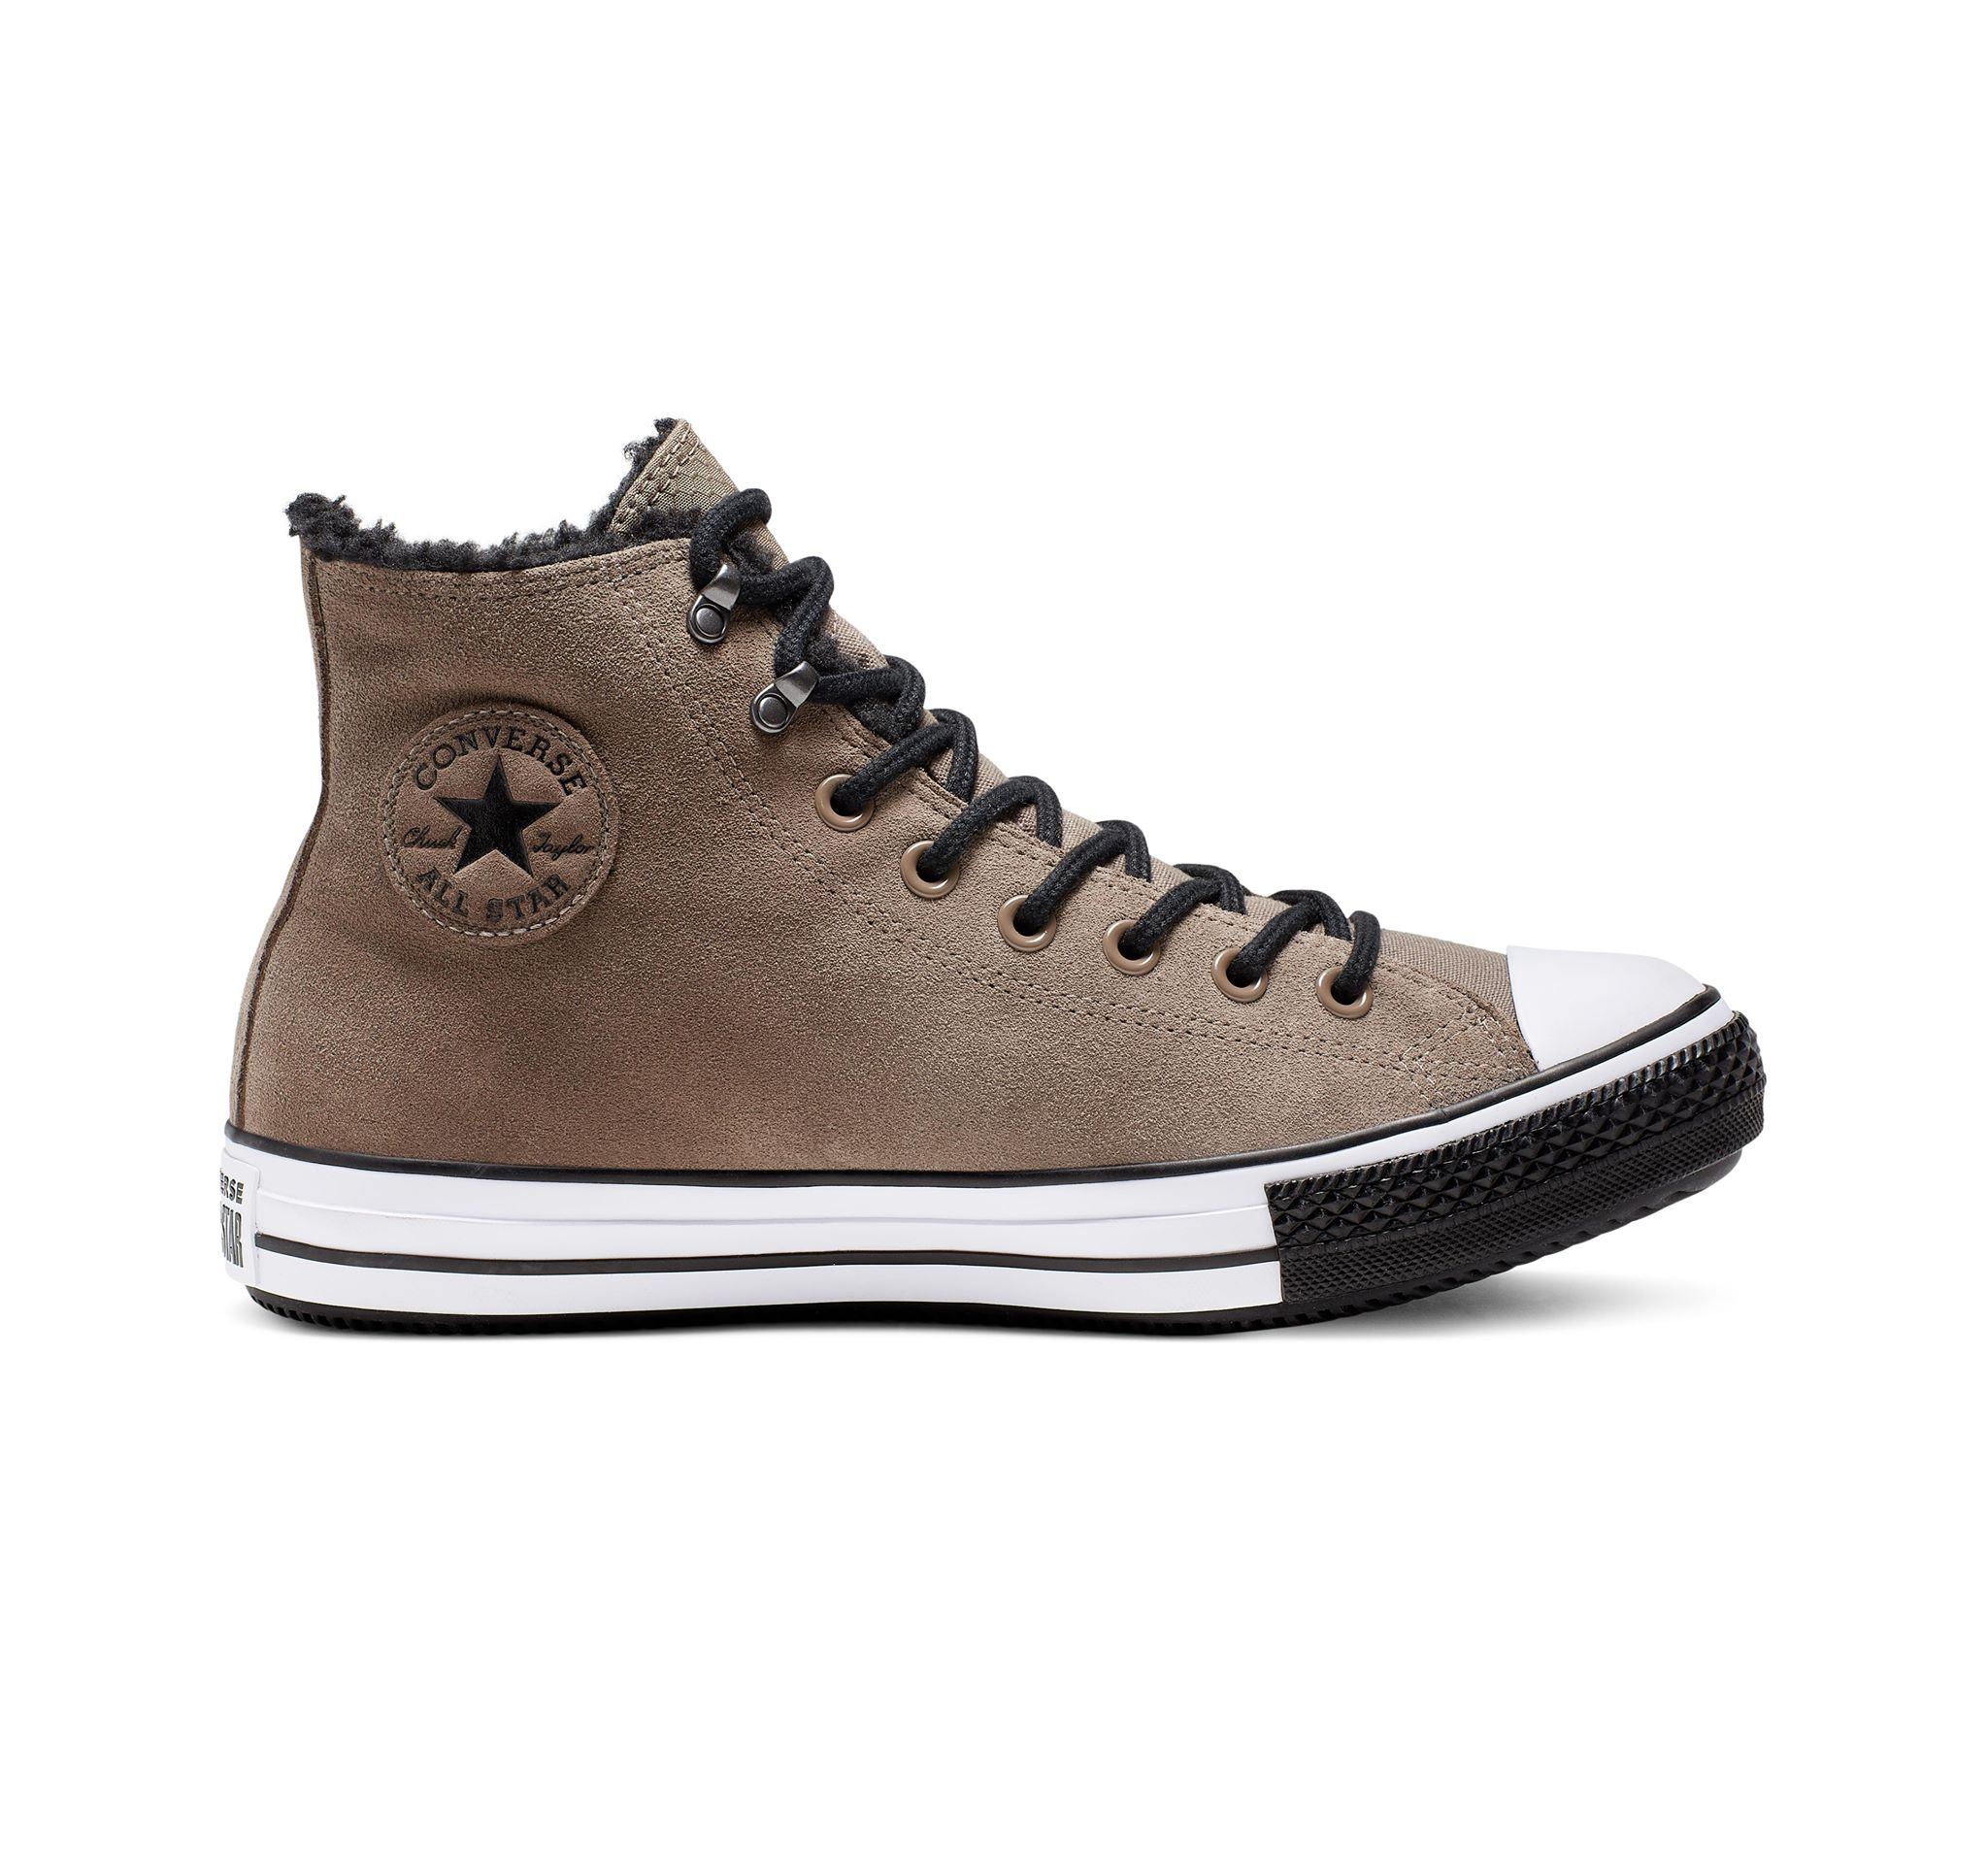 Chuck Taylor All Star Winter Waterproof High Top